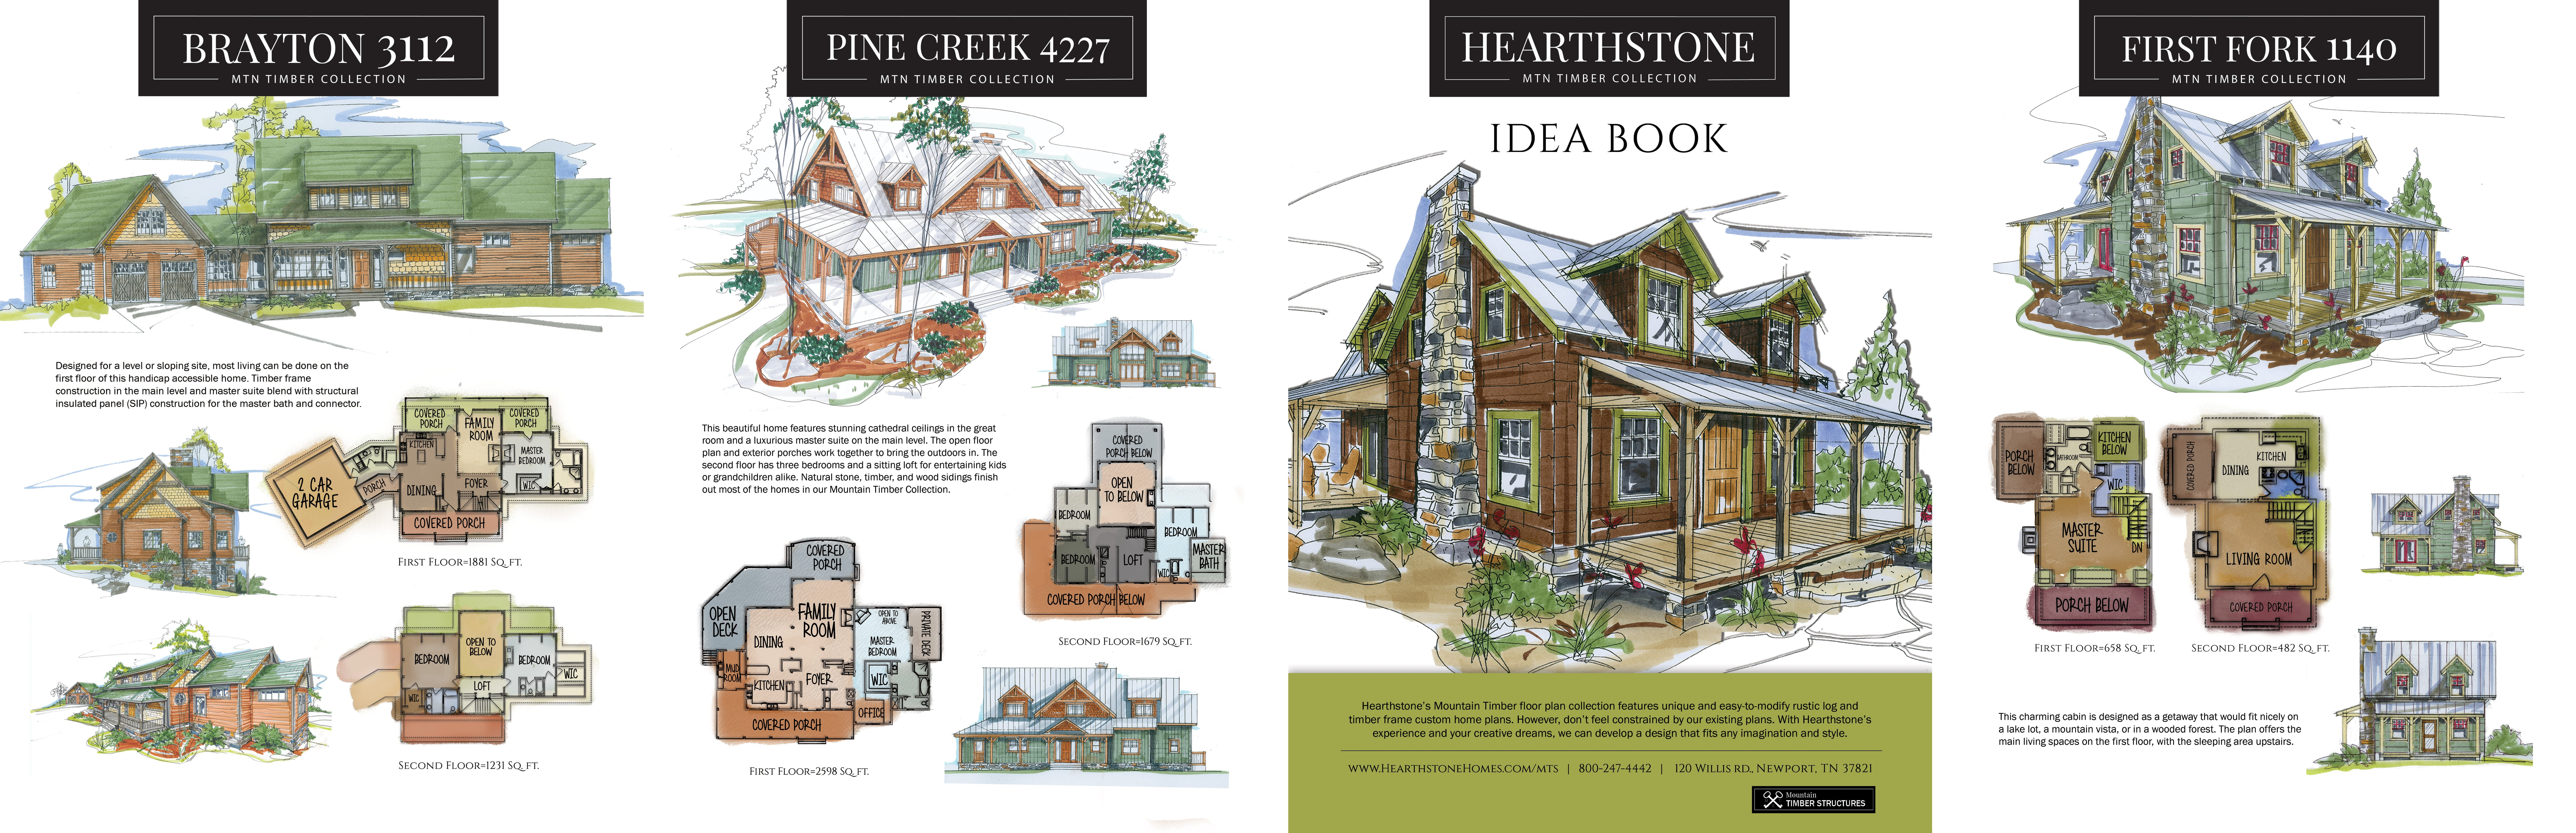 New Mountain Timber IDEA BOOK | HearthStone Homes